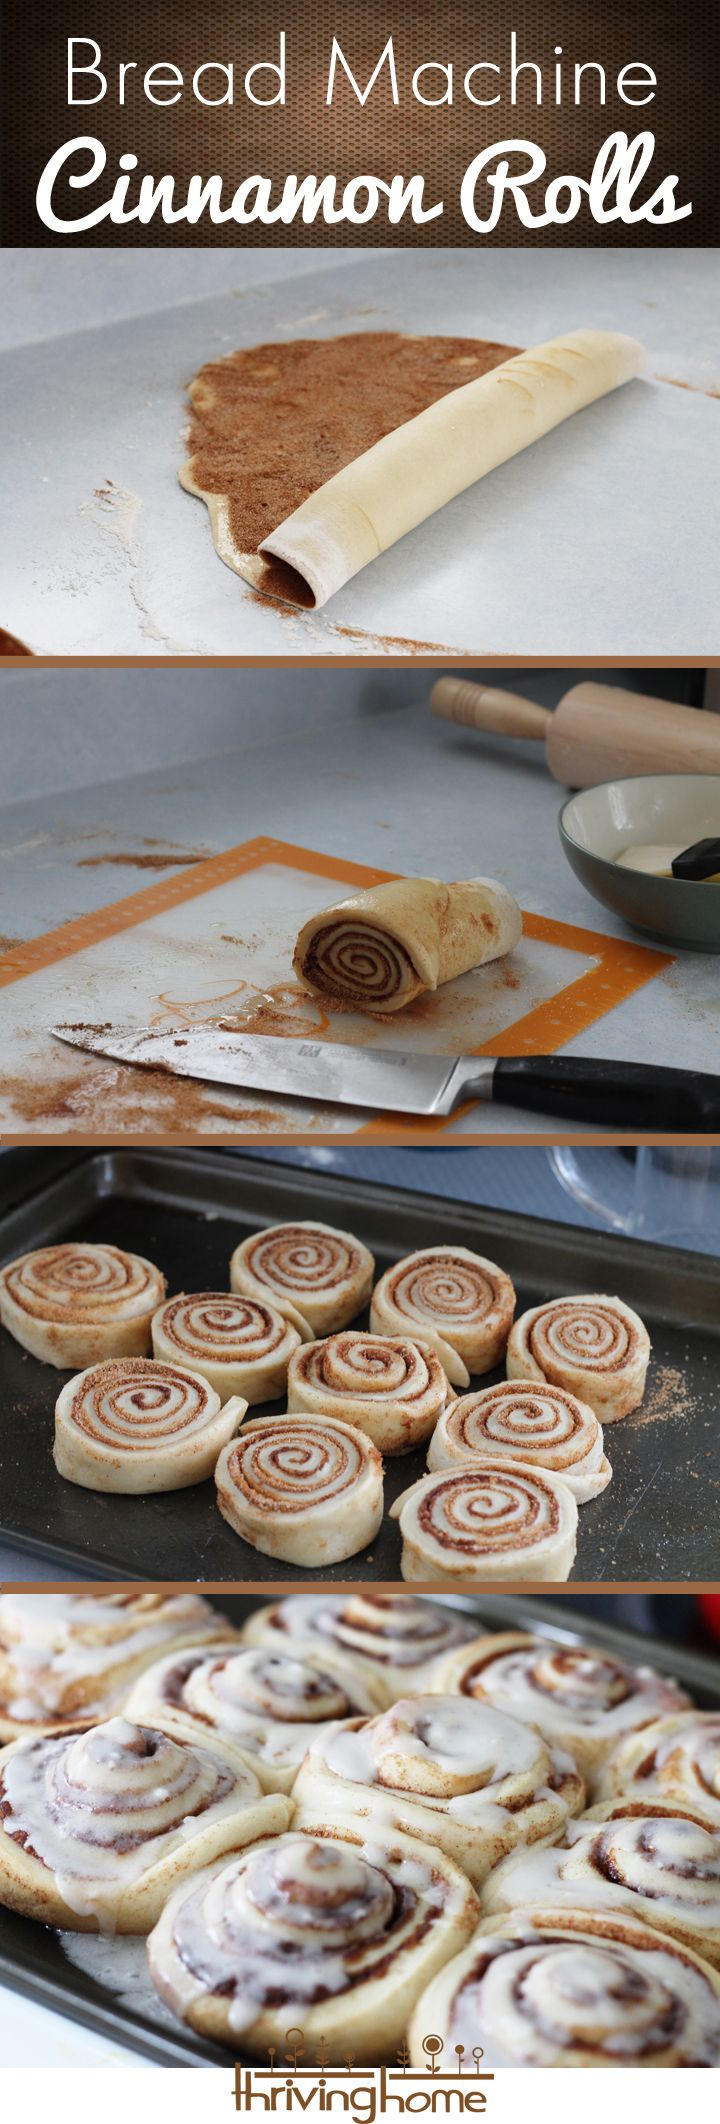 Bread machine cinnamon roll recipe. So easy to just let the bread machine make the dough for you and then you do the fun part: baking them!